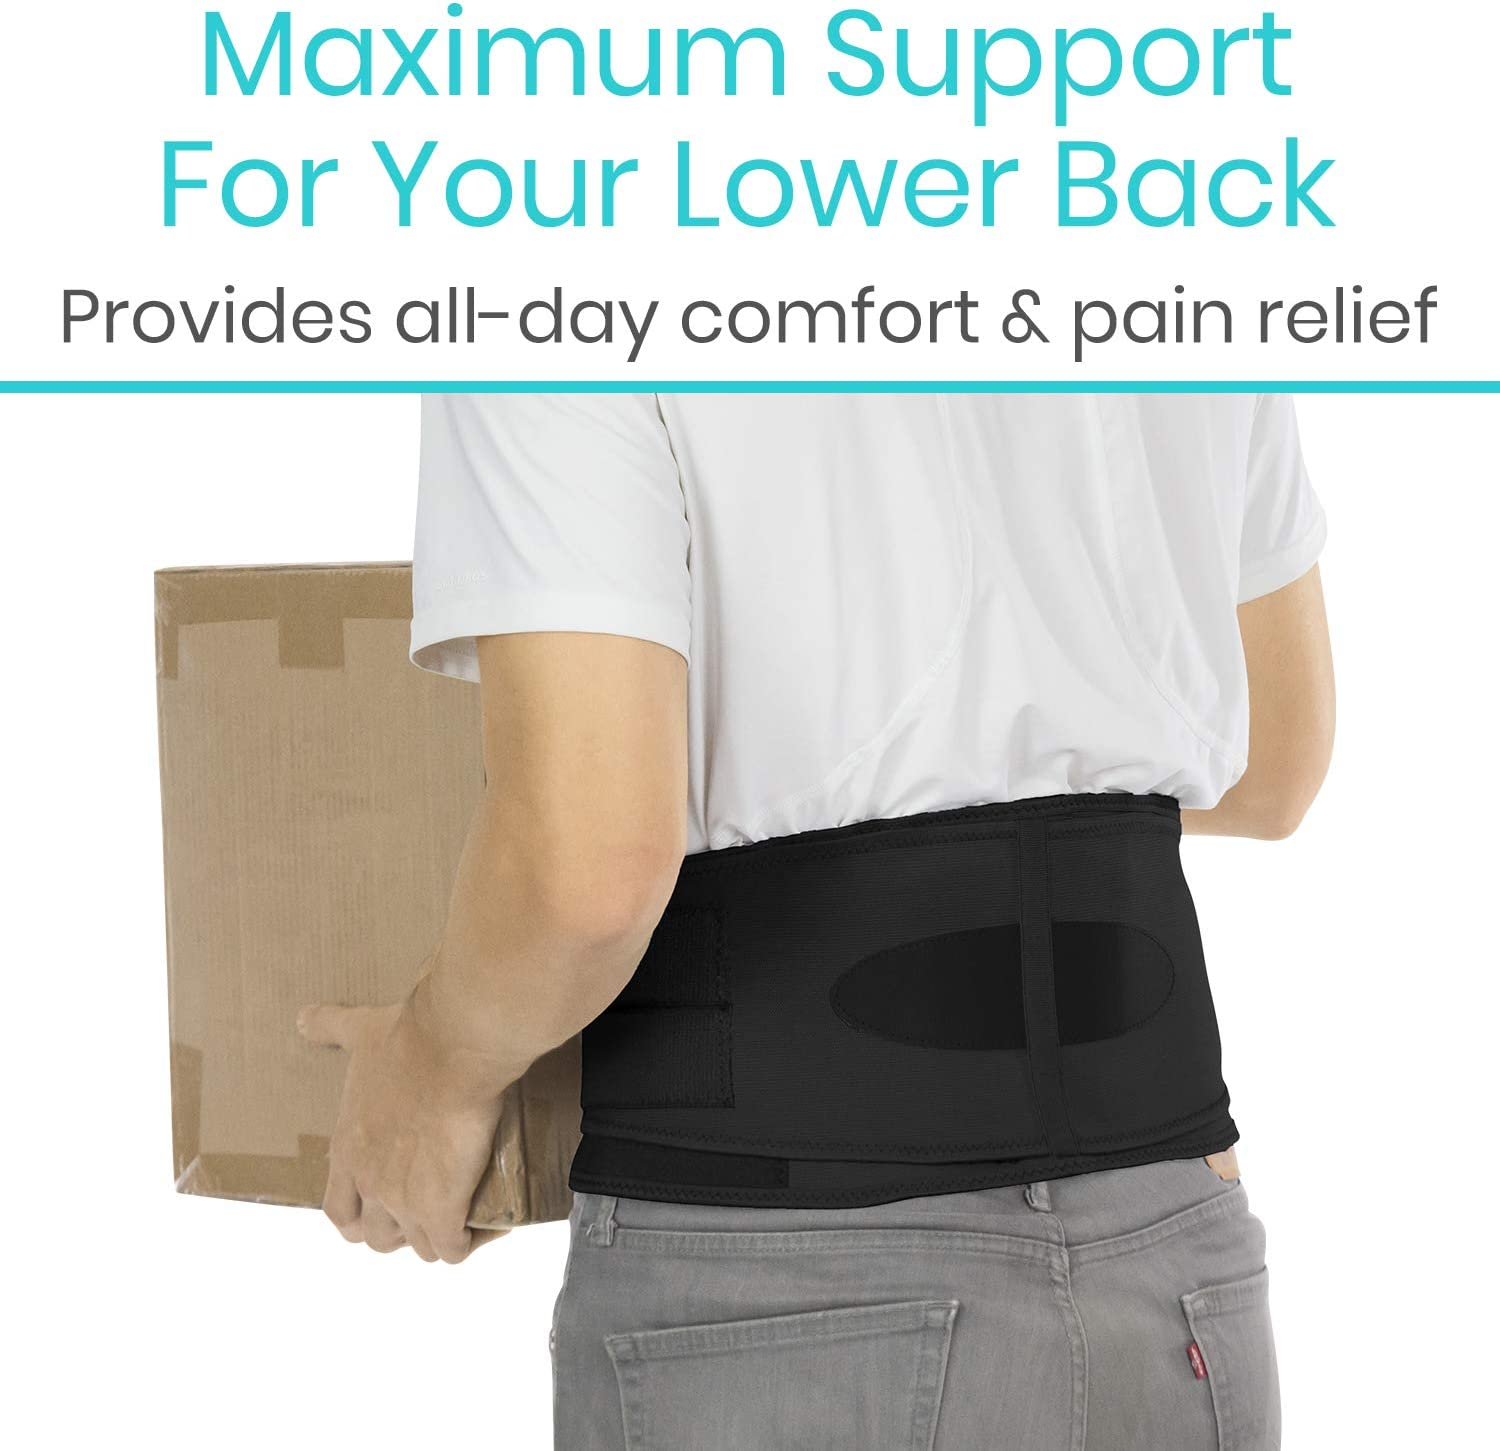 Vive Lower Back Brace - Support for Chronic Pain, Sciatica, Spasms, Nerve and Herniated or Slipped Disc